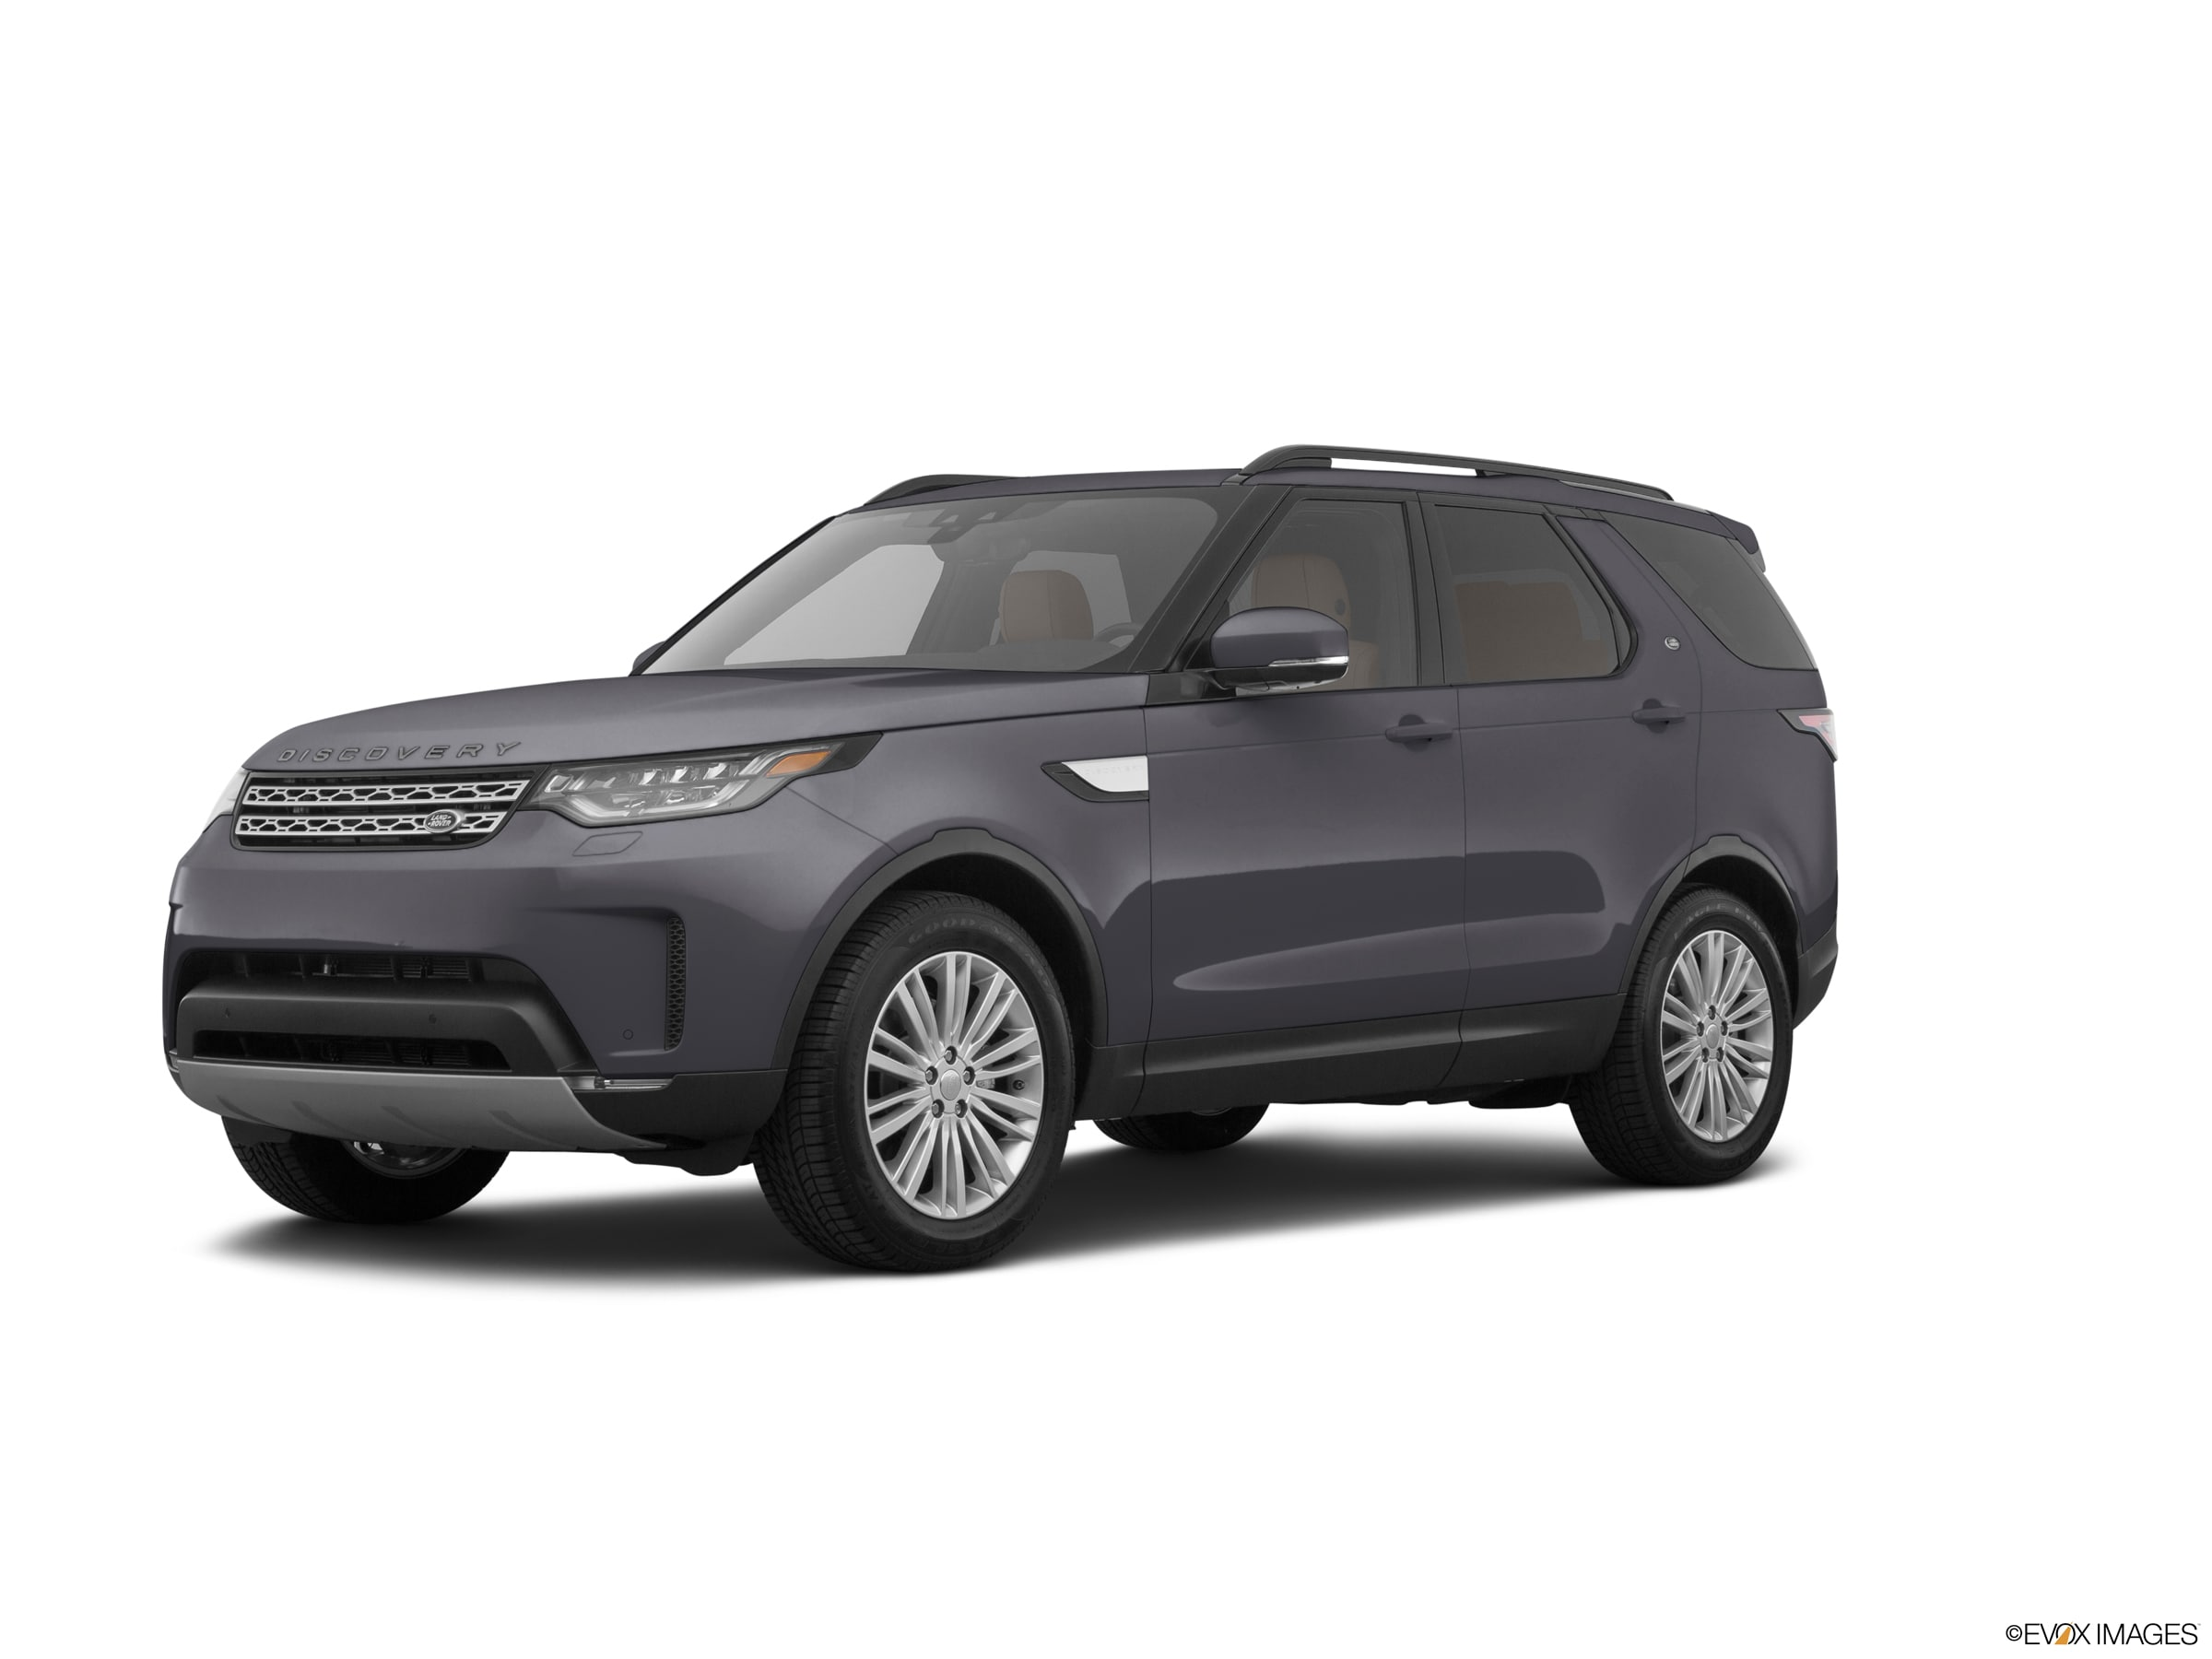 2017 Land Rover Discovery HSE V6 Supercharged